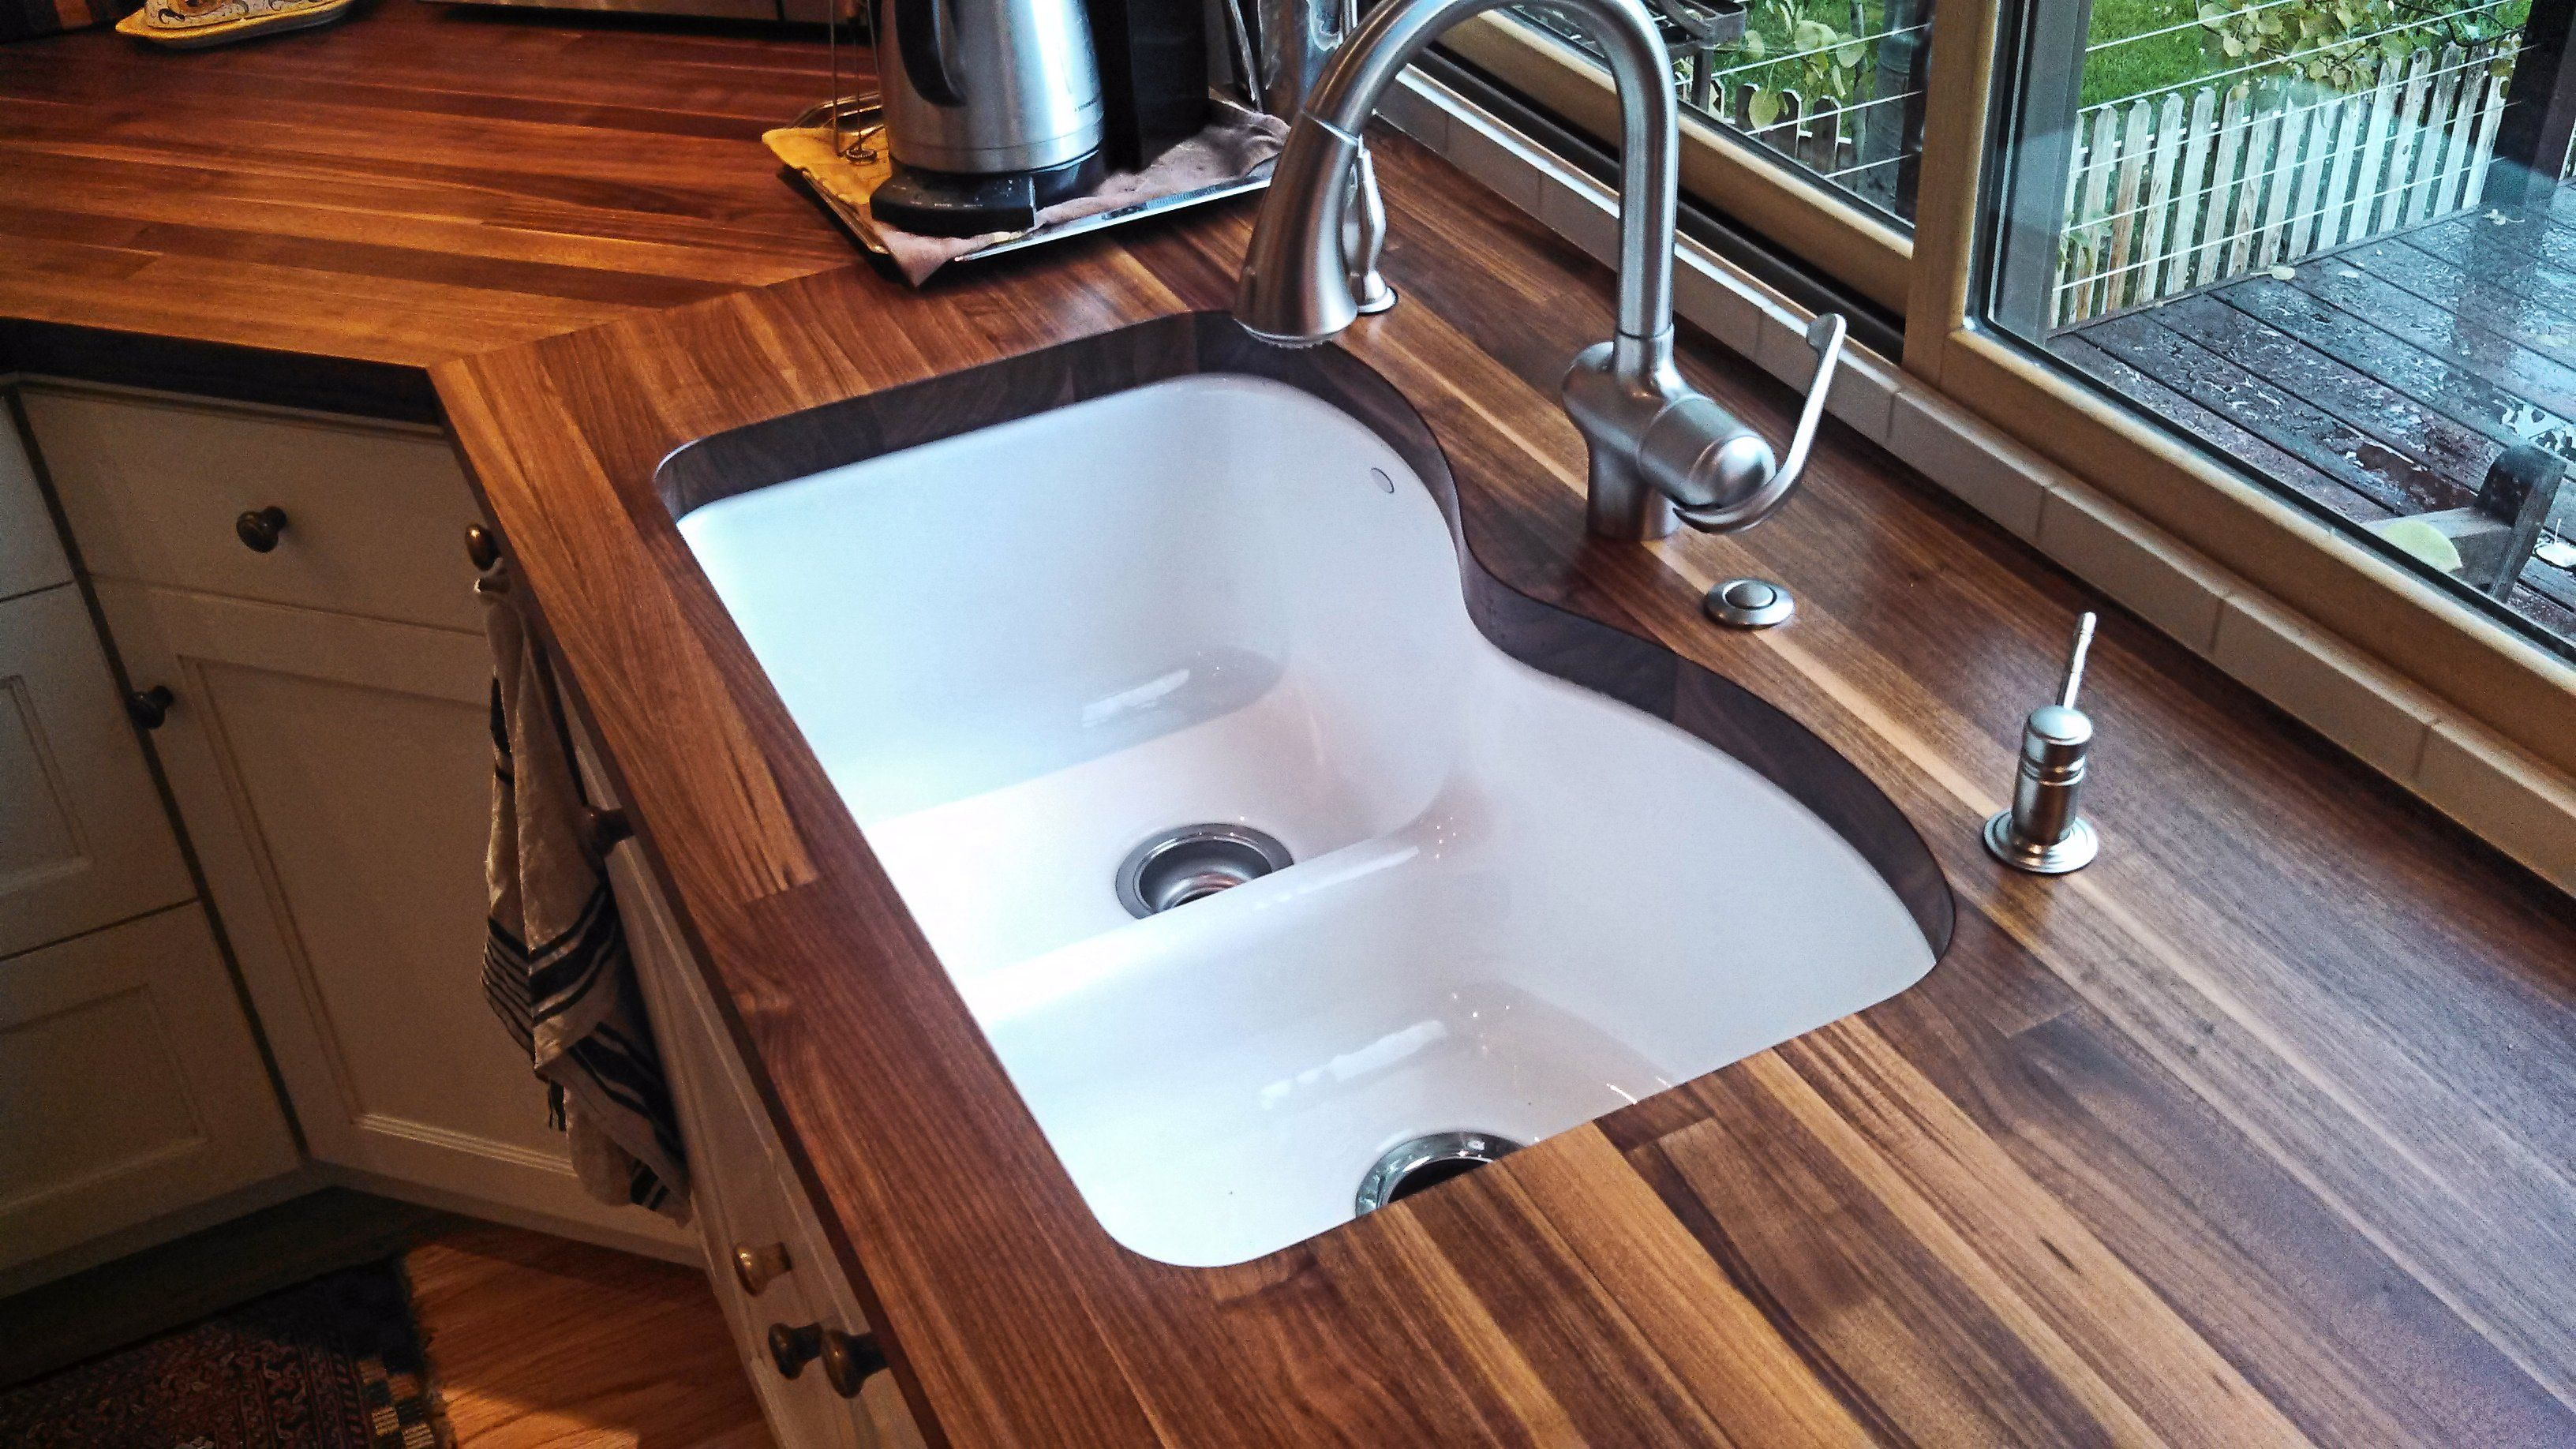 Marvelous Edge Grain Walnut Countertop With Undermount Sink And Tung Oil/Citrus Finish